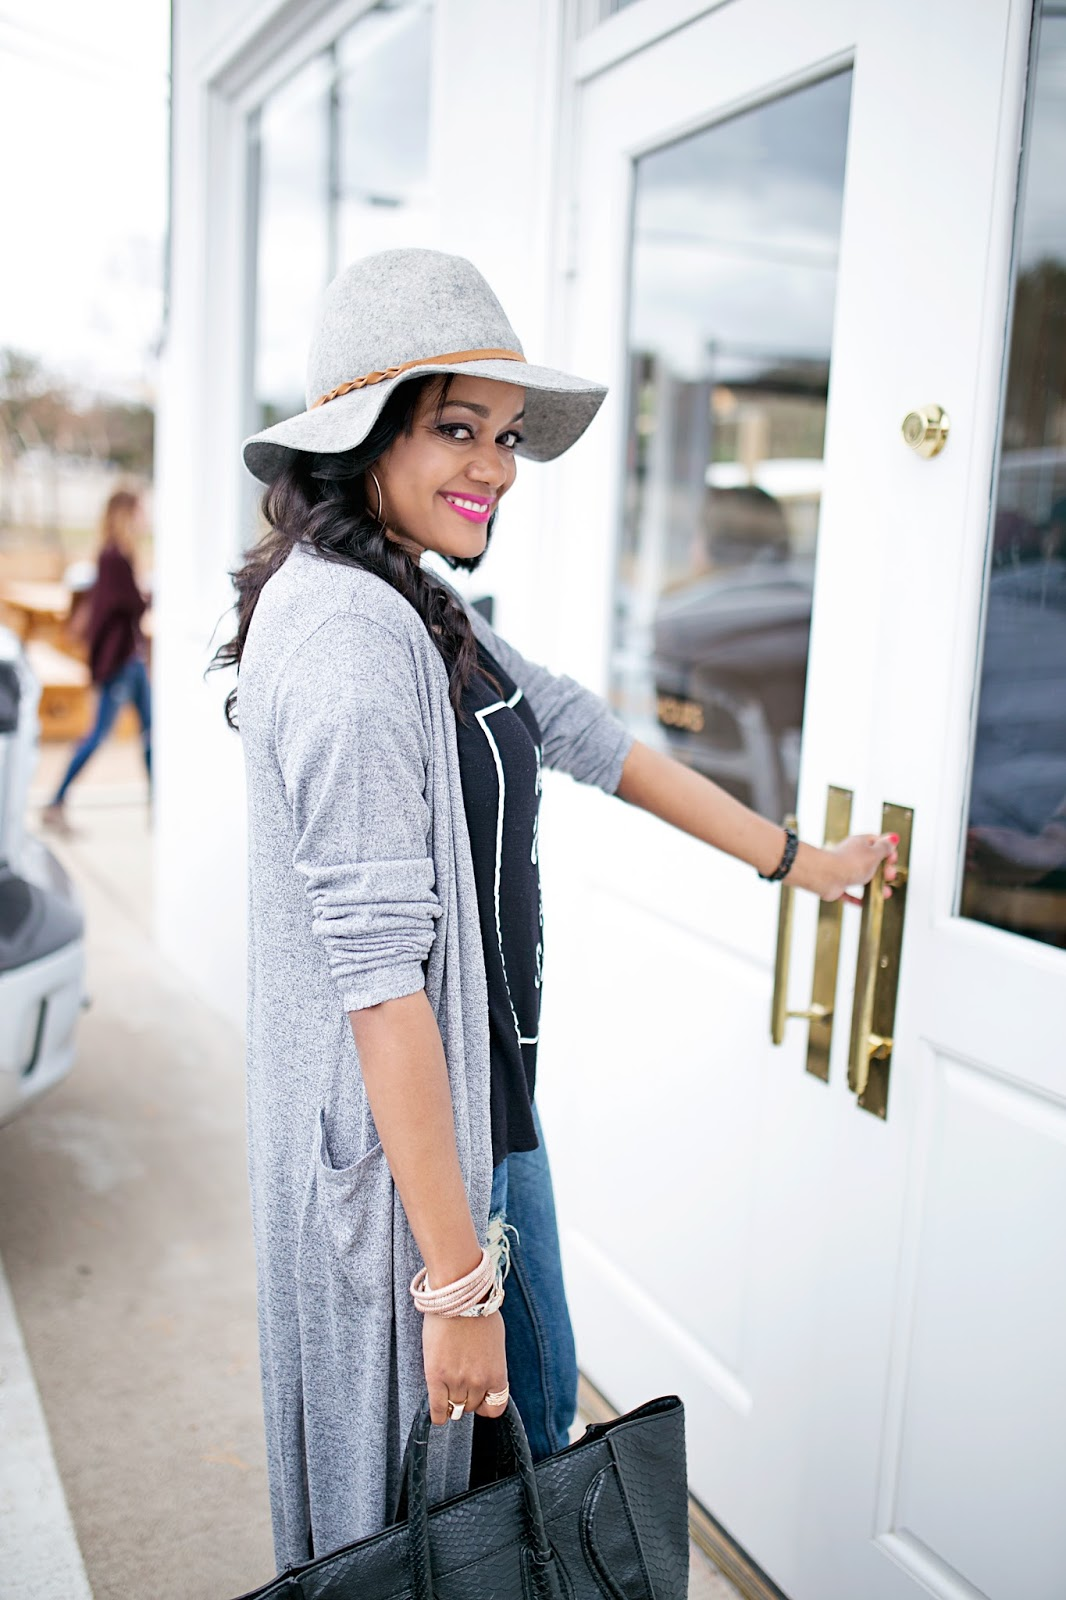 h&m long cardigan- will work for shoes graphic tee- kohls- ripped boyfriend jeans- gray suede ankle booties- celine style bag, gray floppy hat- mac flat out fabulous- dallas blogger- fashion blogger- black girl blogger